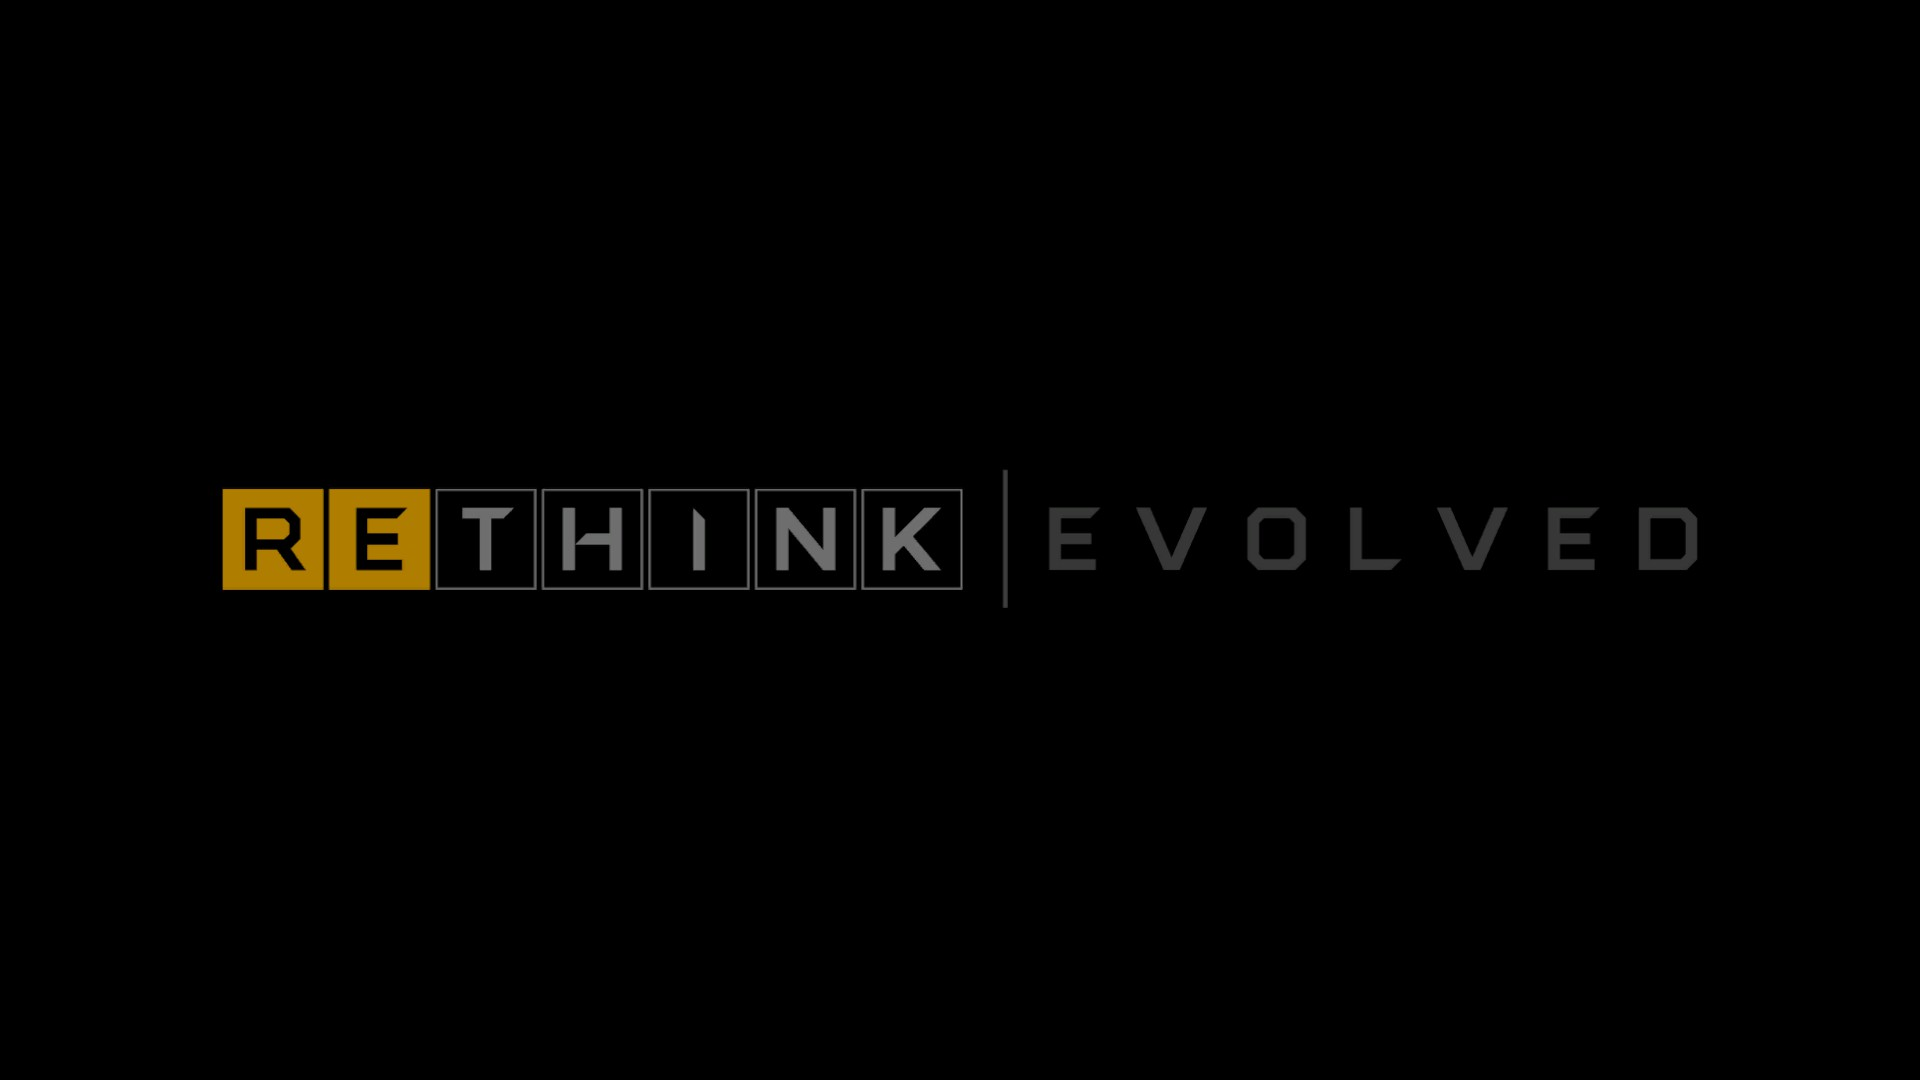 ReThink | Evolved 2